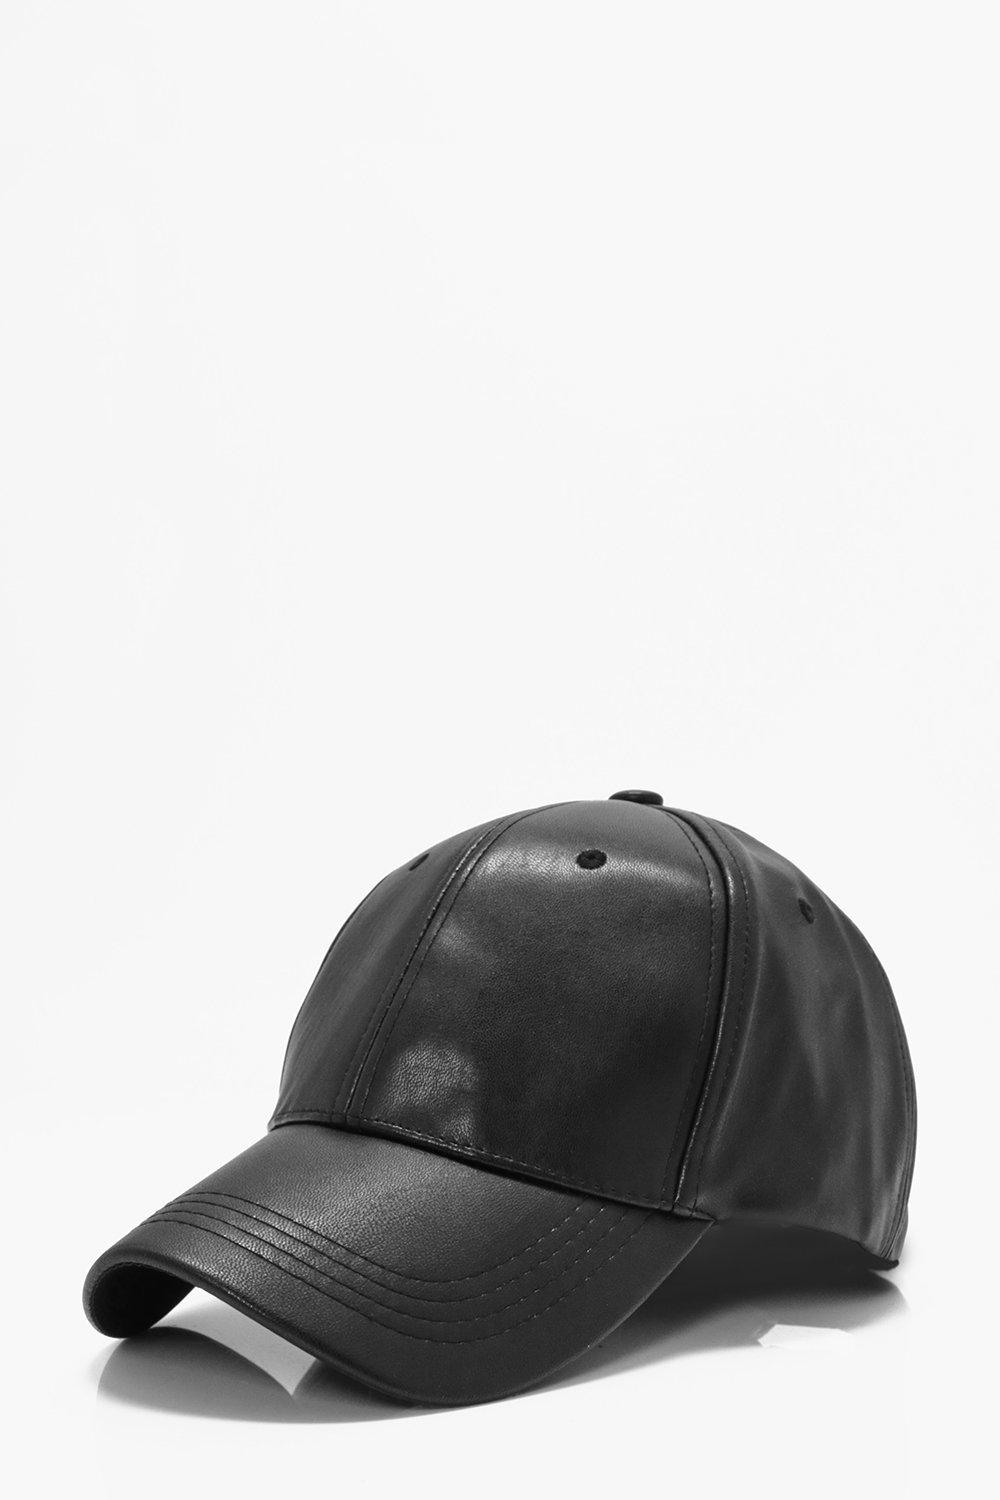 PU Cap - black - Plain PU Cap - black